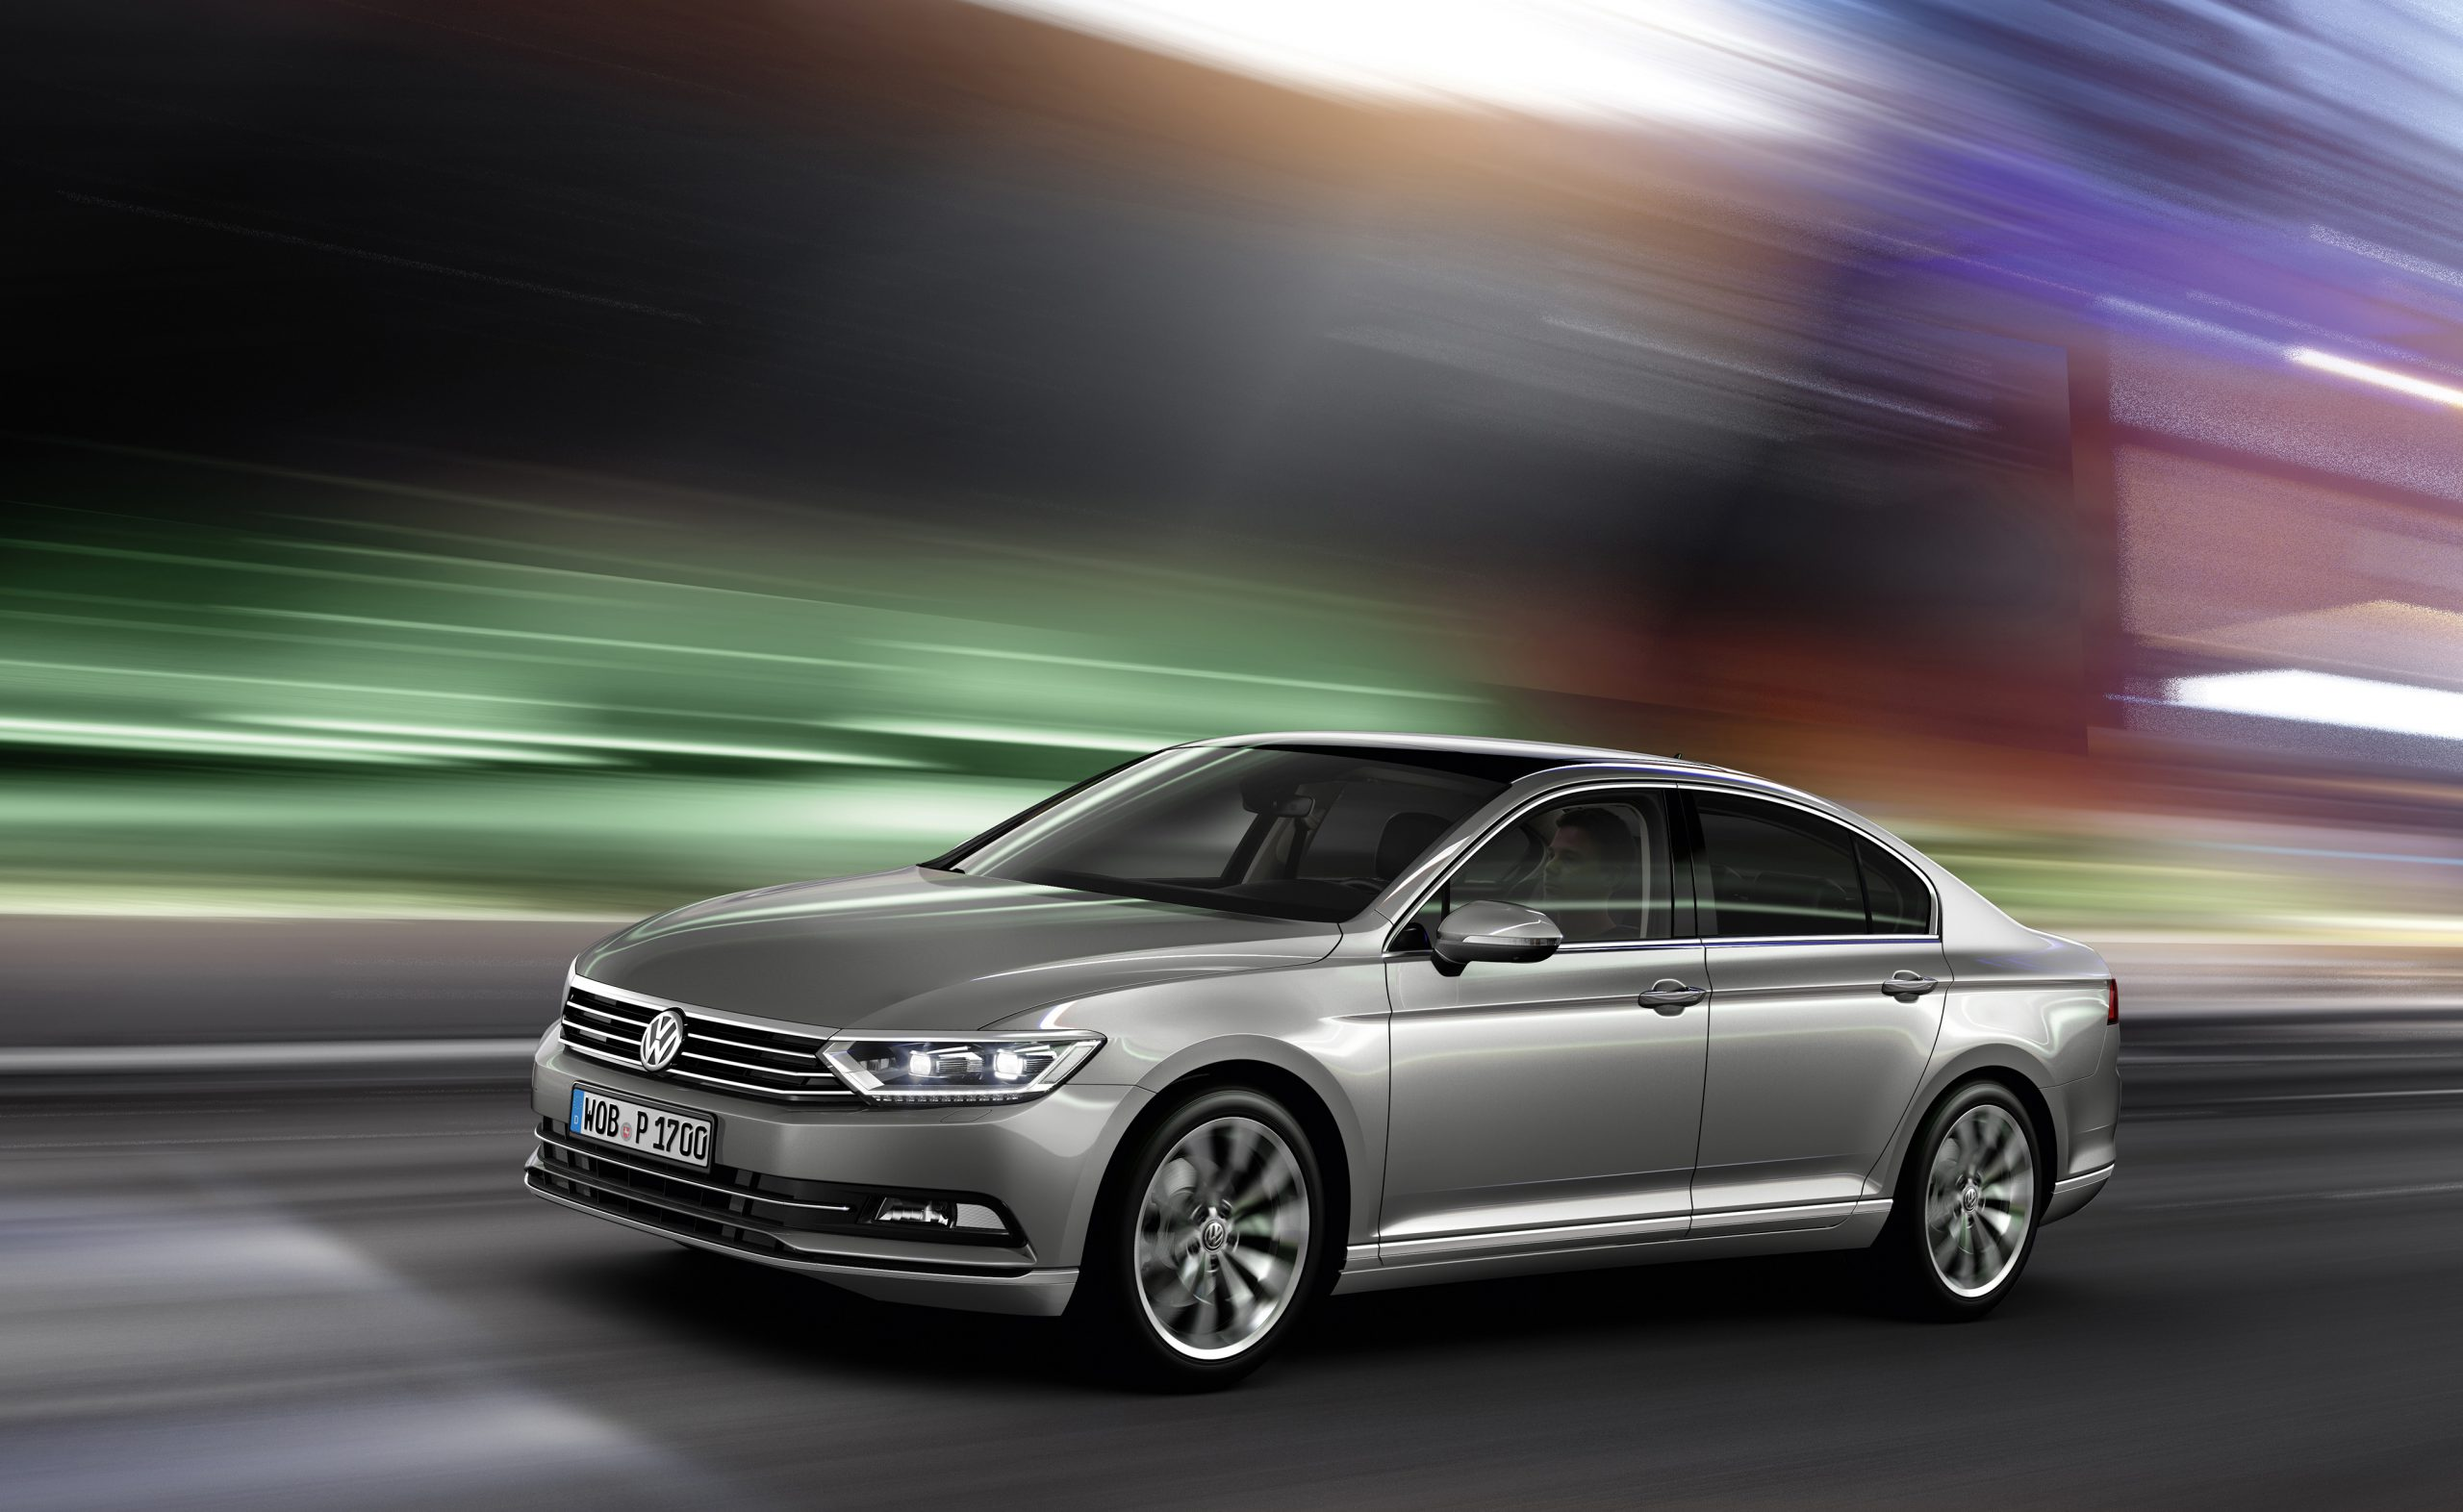 Volkswagen Passat Eighth Generation Revealed: Latest News